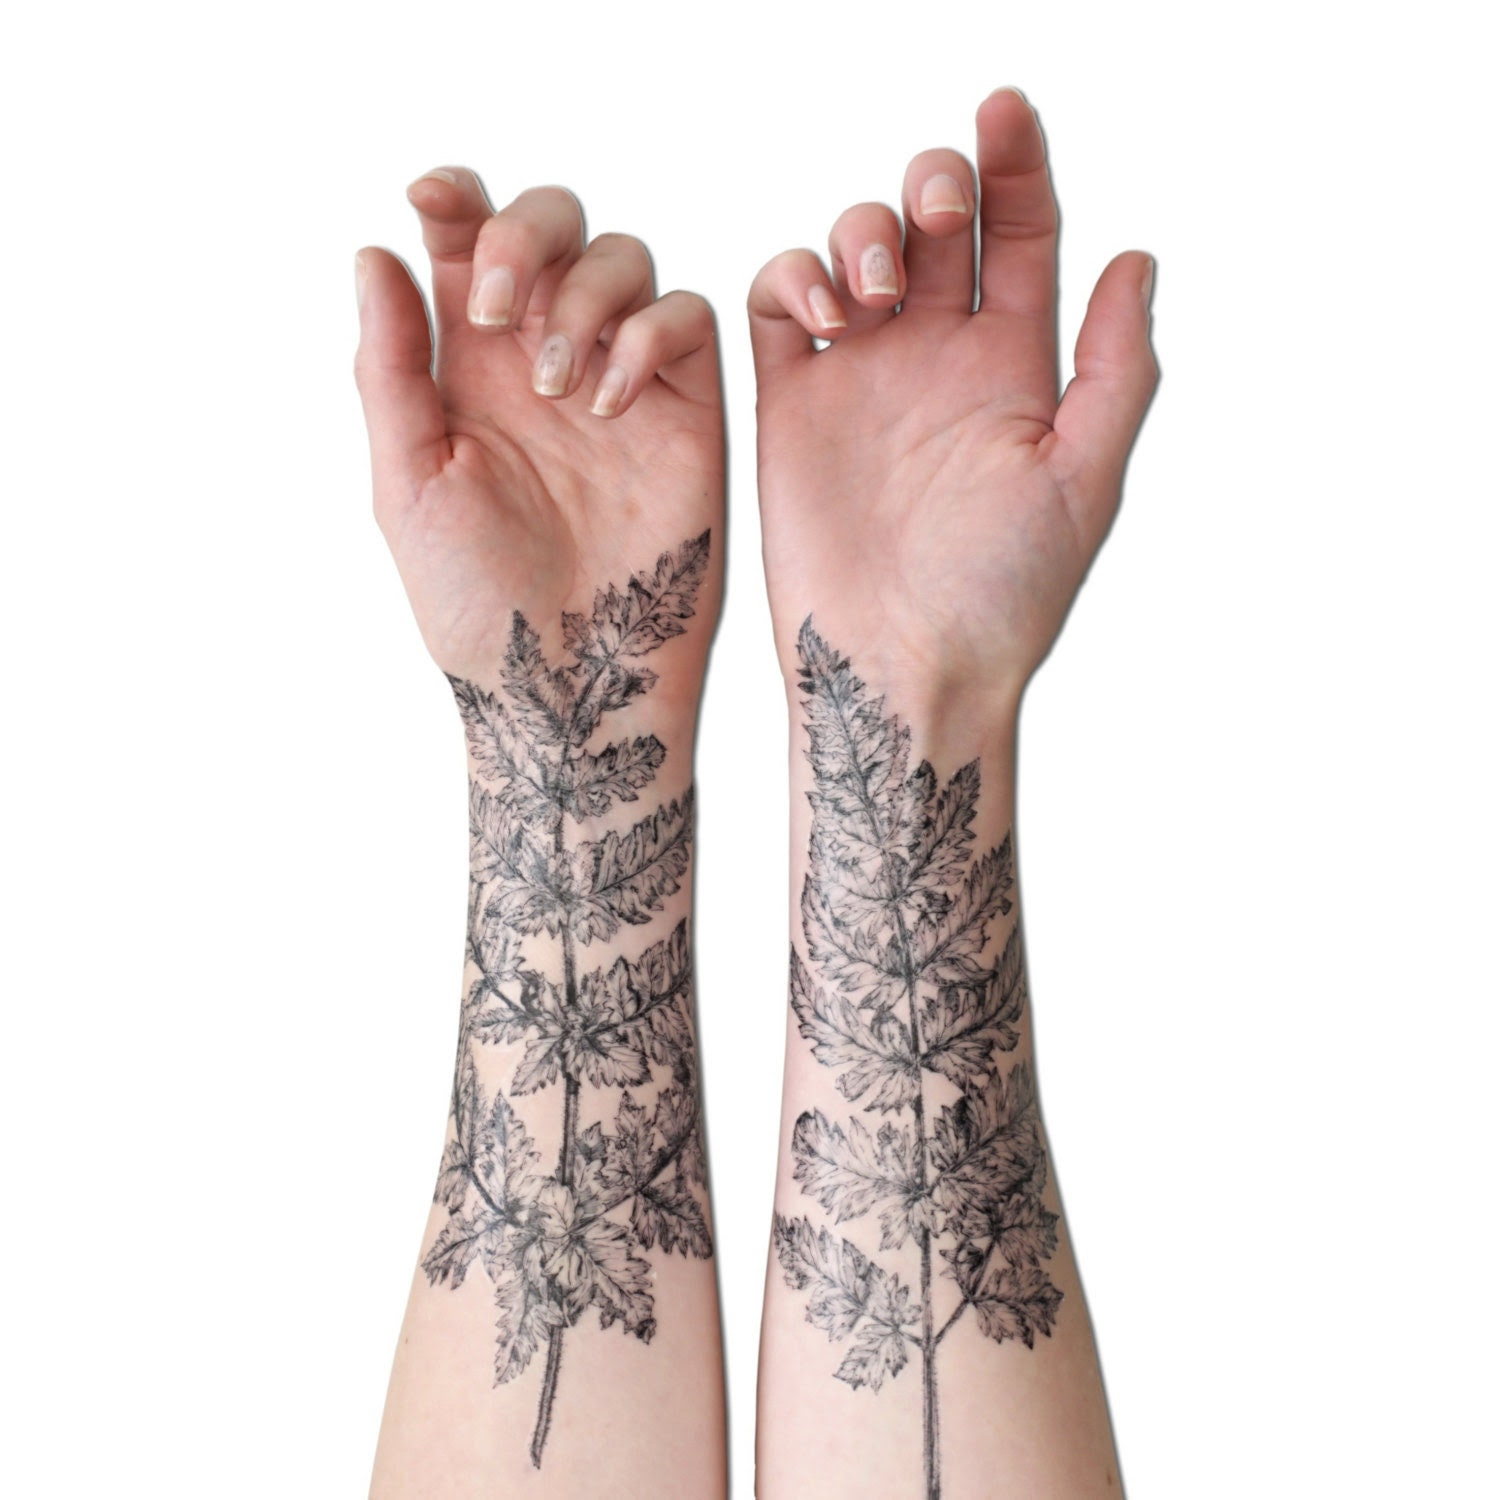 NATURE GIRL From the Forest Fern & Crystal Temporary Tattoo Kit - VictoriasAviary